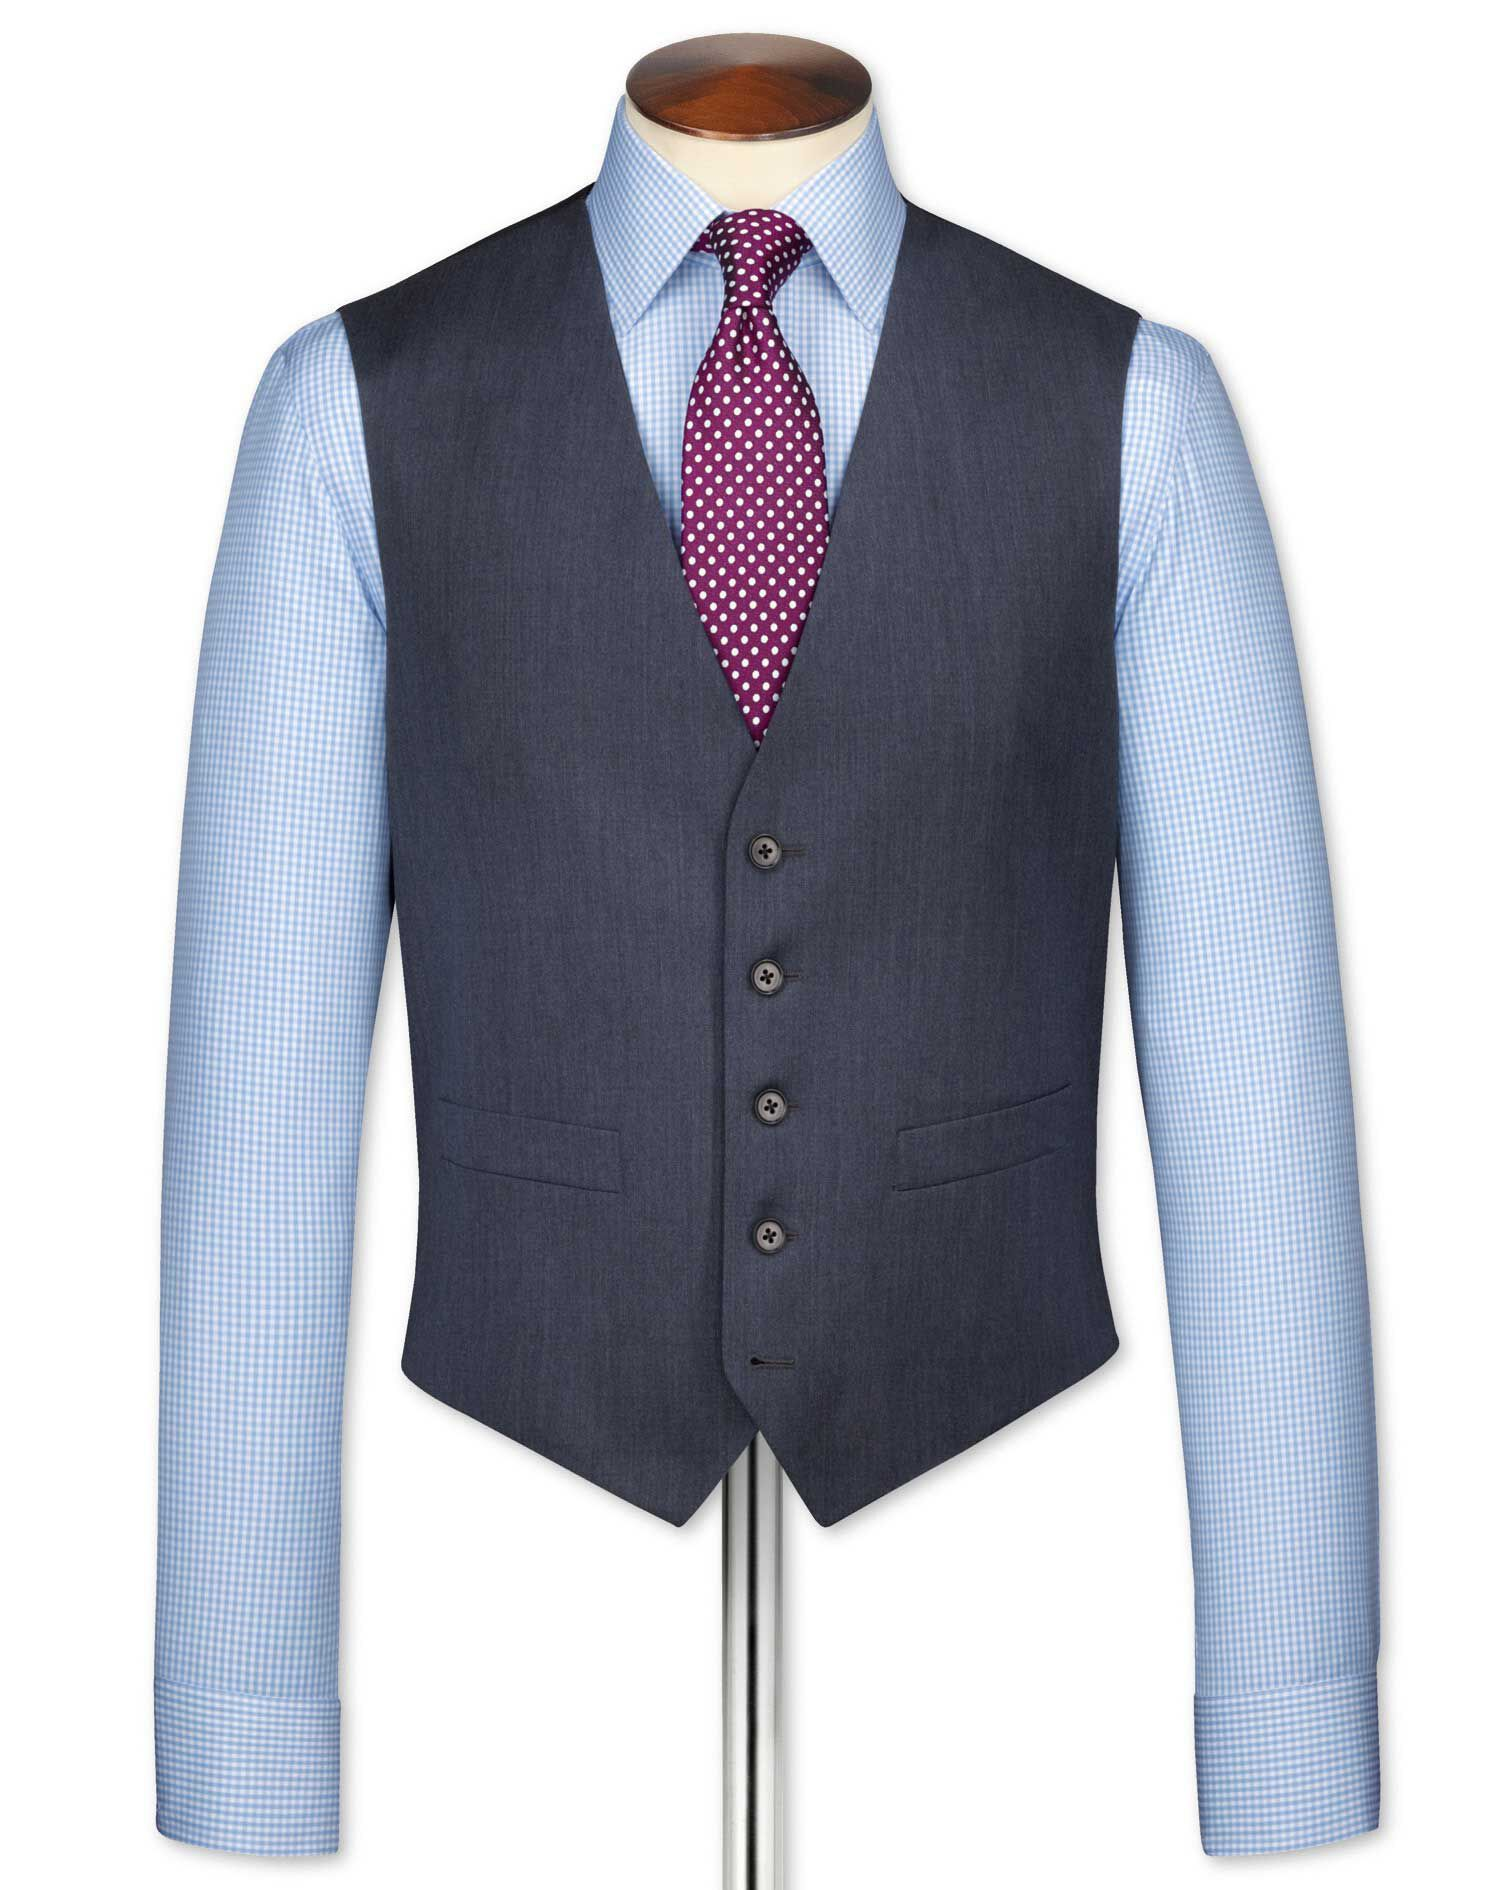 Airforce Blue Twill Business Suit Wool Waistcoat Size w38 by Charles Tyrwhitt